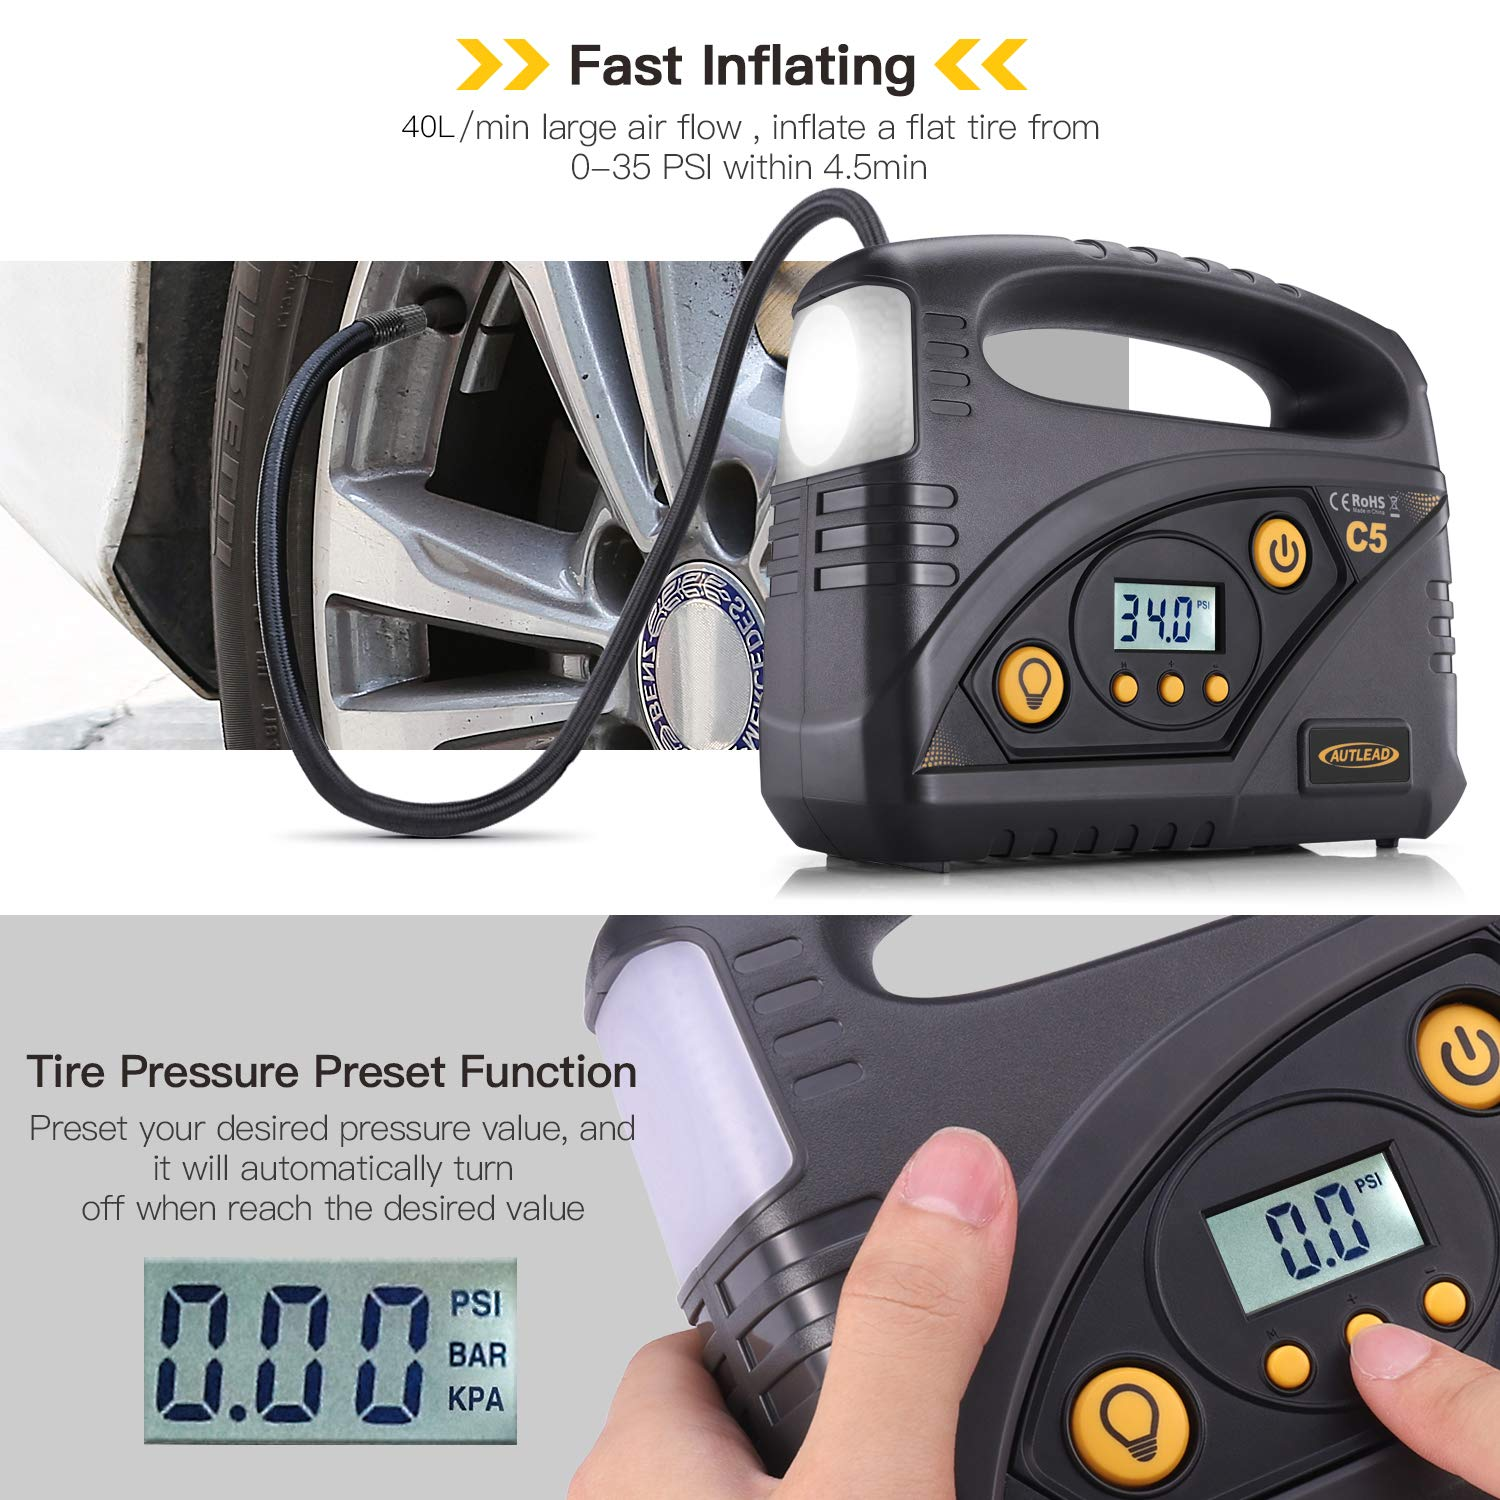 AUTLEAD C5 Digital Tire Inflator, 40L/min Portable Air Compressor Pump, 12V DC Auto Tire Pump with Pressure Gauge, LED Light, 4 Adaptors for Car, Bicycle, Motorbike and Others by AUTLEAD (Image #3)